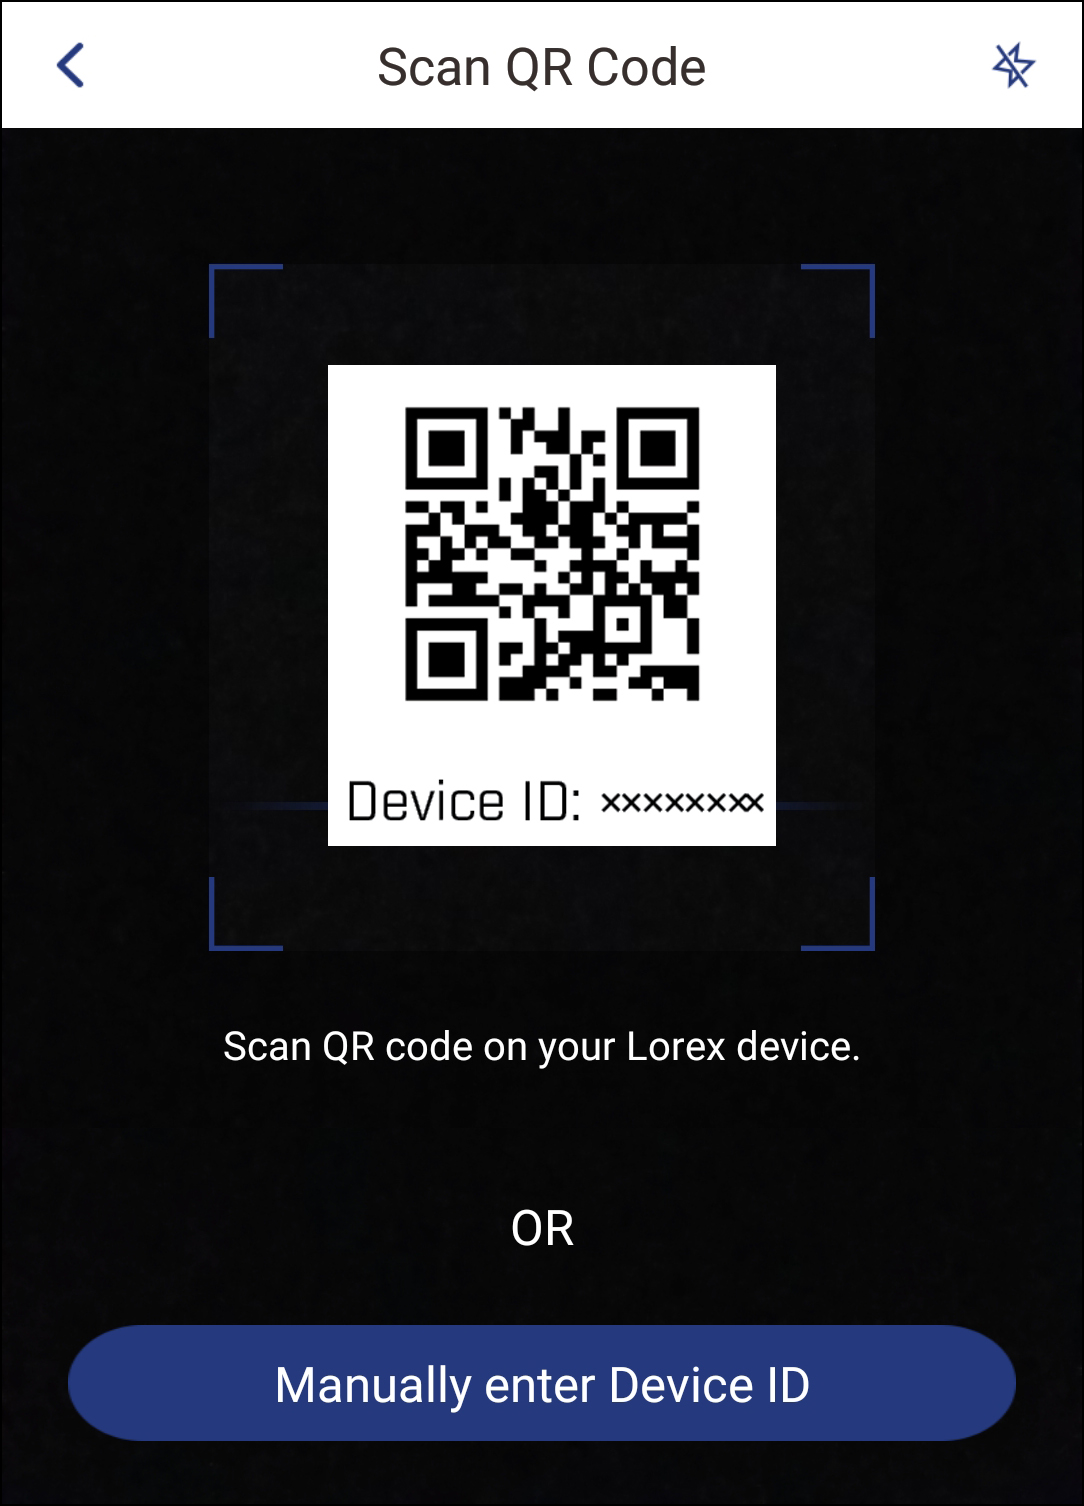 4Â Â Connecting to Your Lorex Device